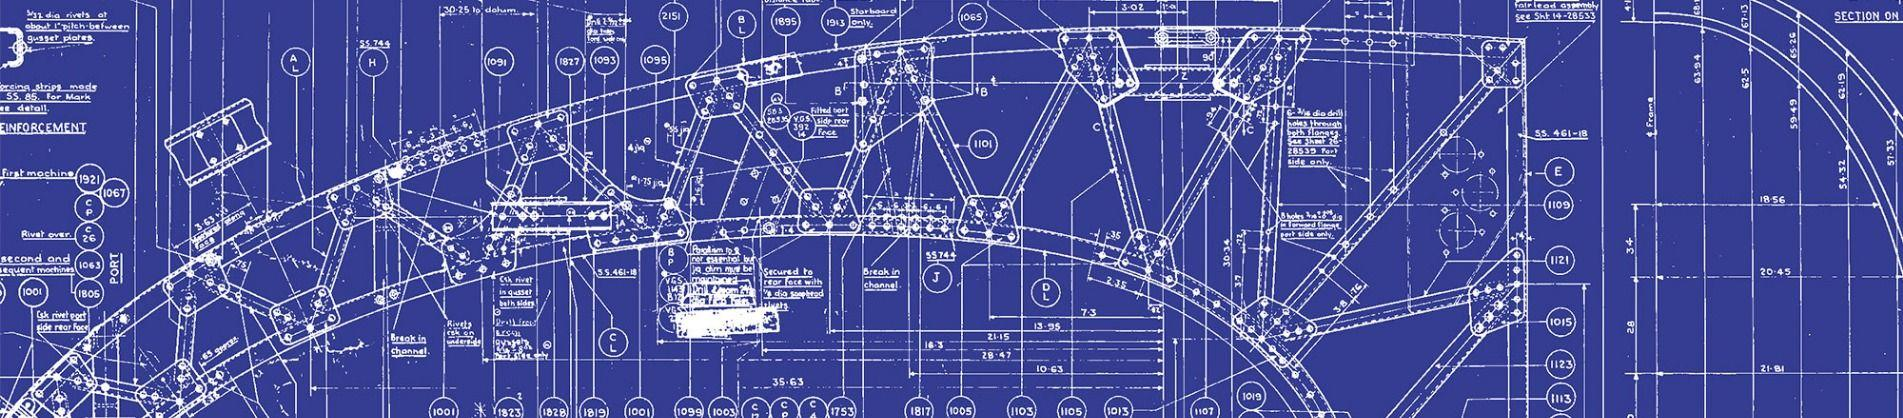 inside-track-wellington-frame-blueprint-slider.jpg